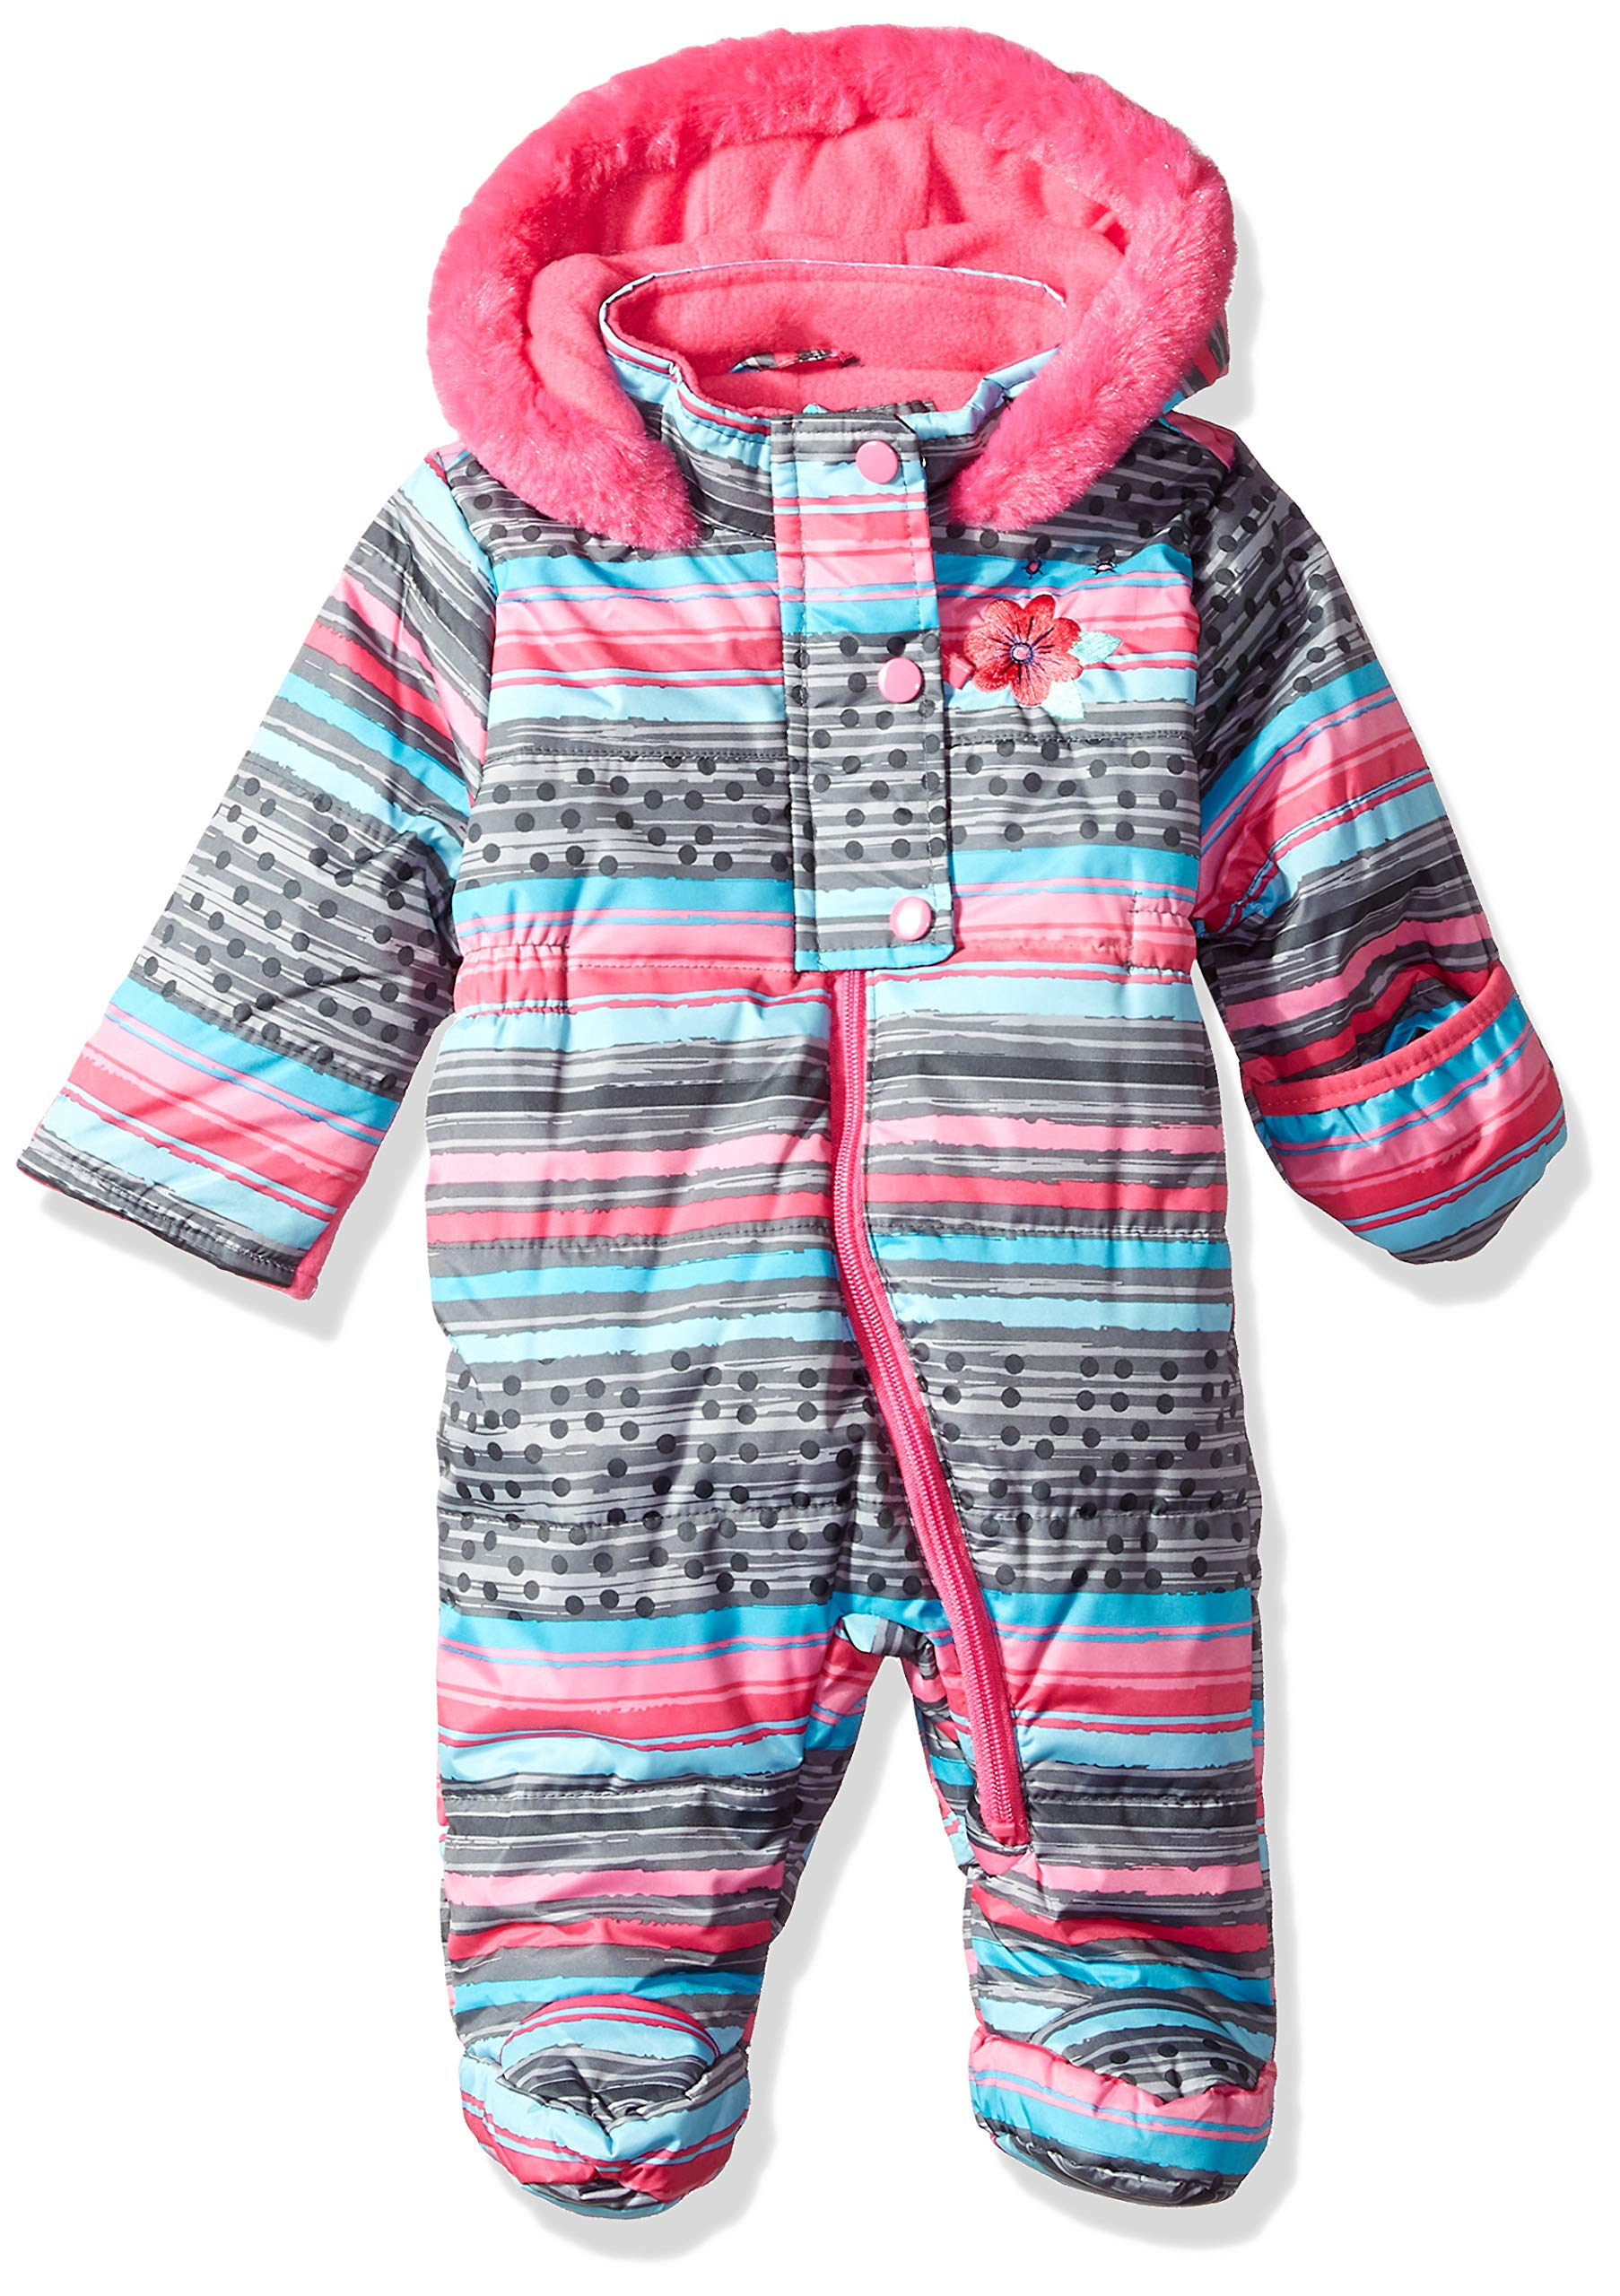 Wippette Baby Girls Striped Snowsuit Pram, Charcoal, 3/6M by Wippette